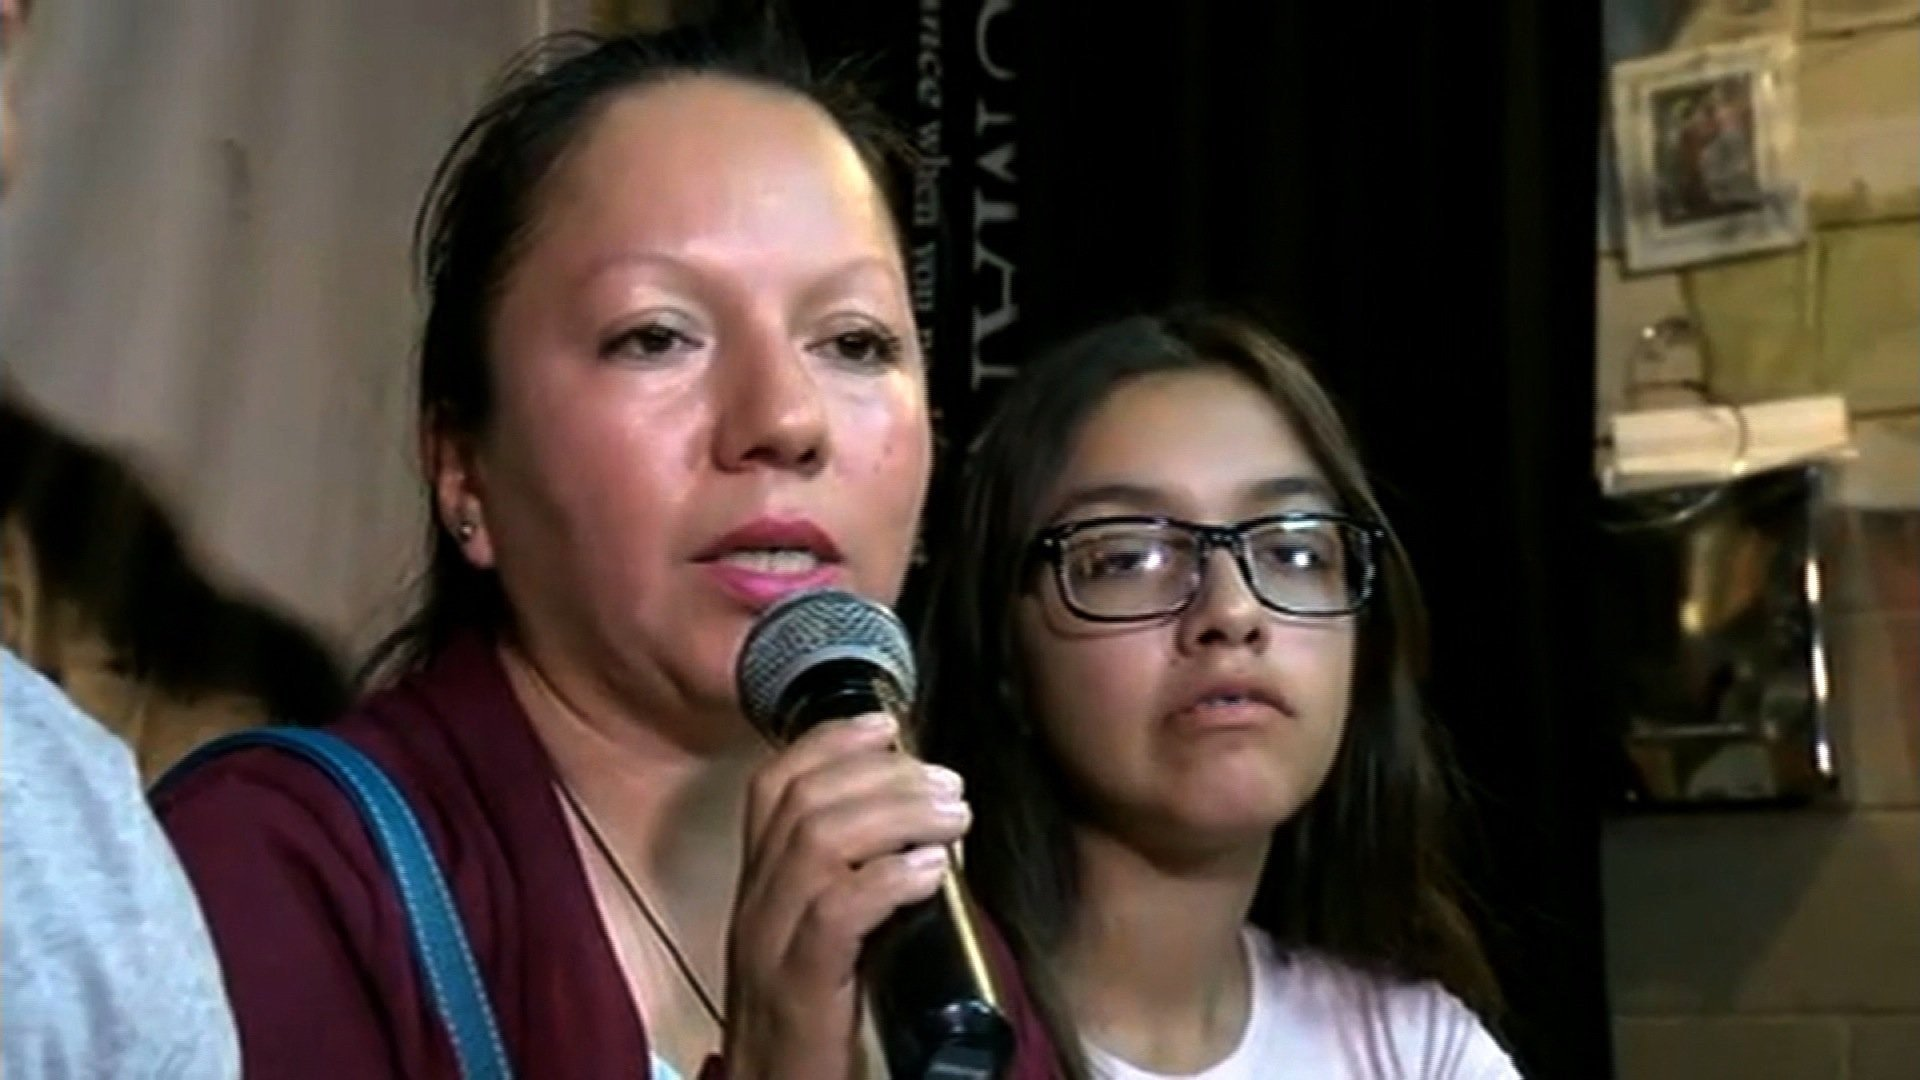 ***Embargo Tucson***  Guadalupe Garcia de Rayos was detained and within 24 hours she was deported to her native Mexico. She was turned over to Mexican authorities at a border crossing in Nogales, Arizona, according to US Immigration and Customs...